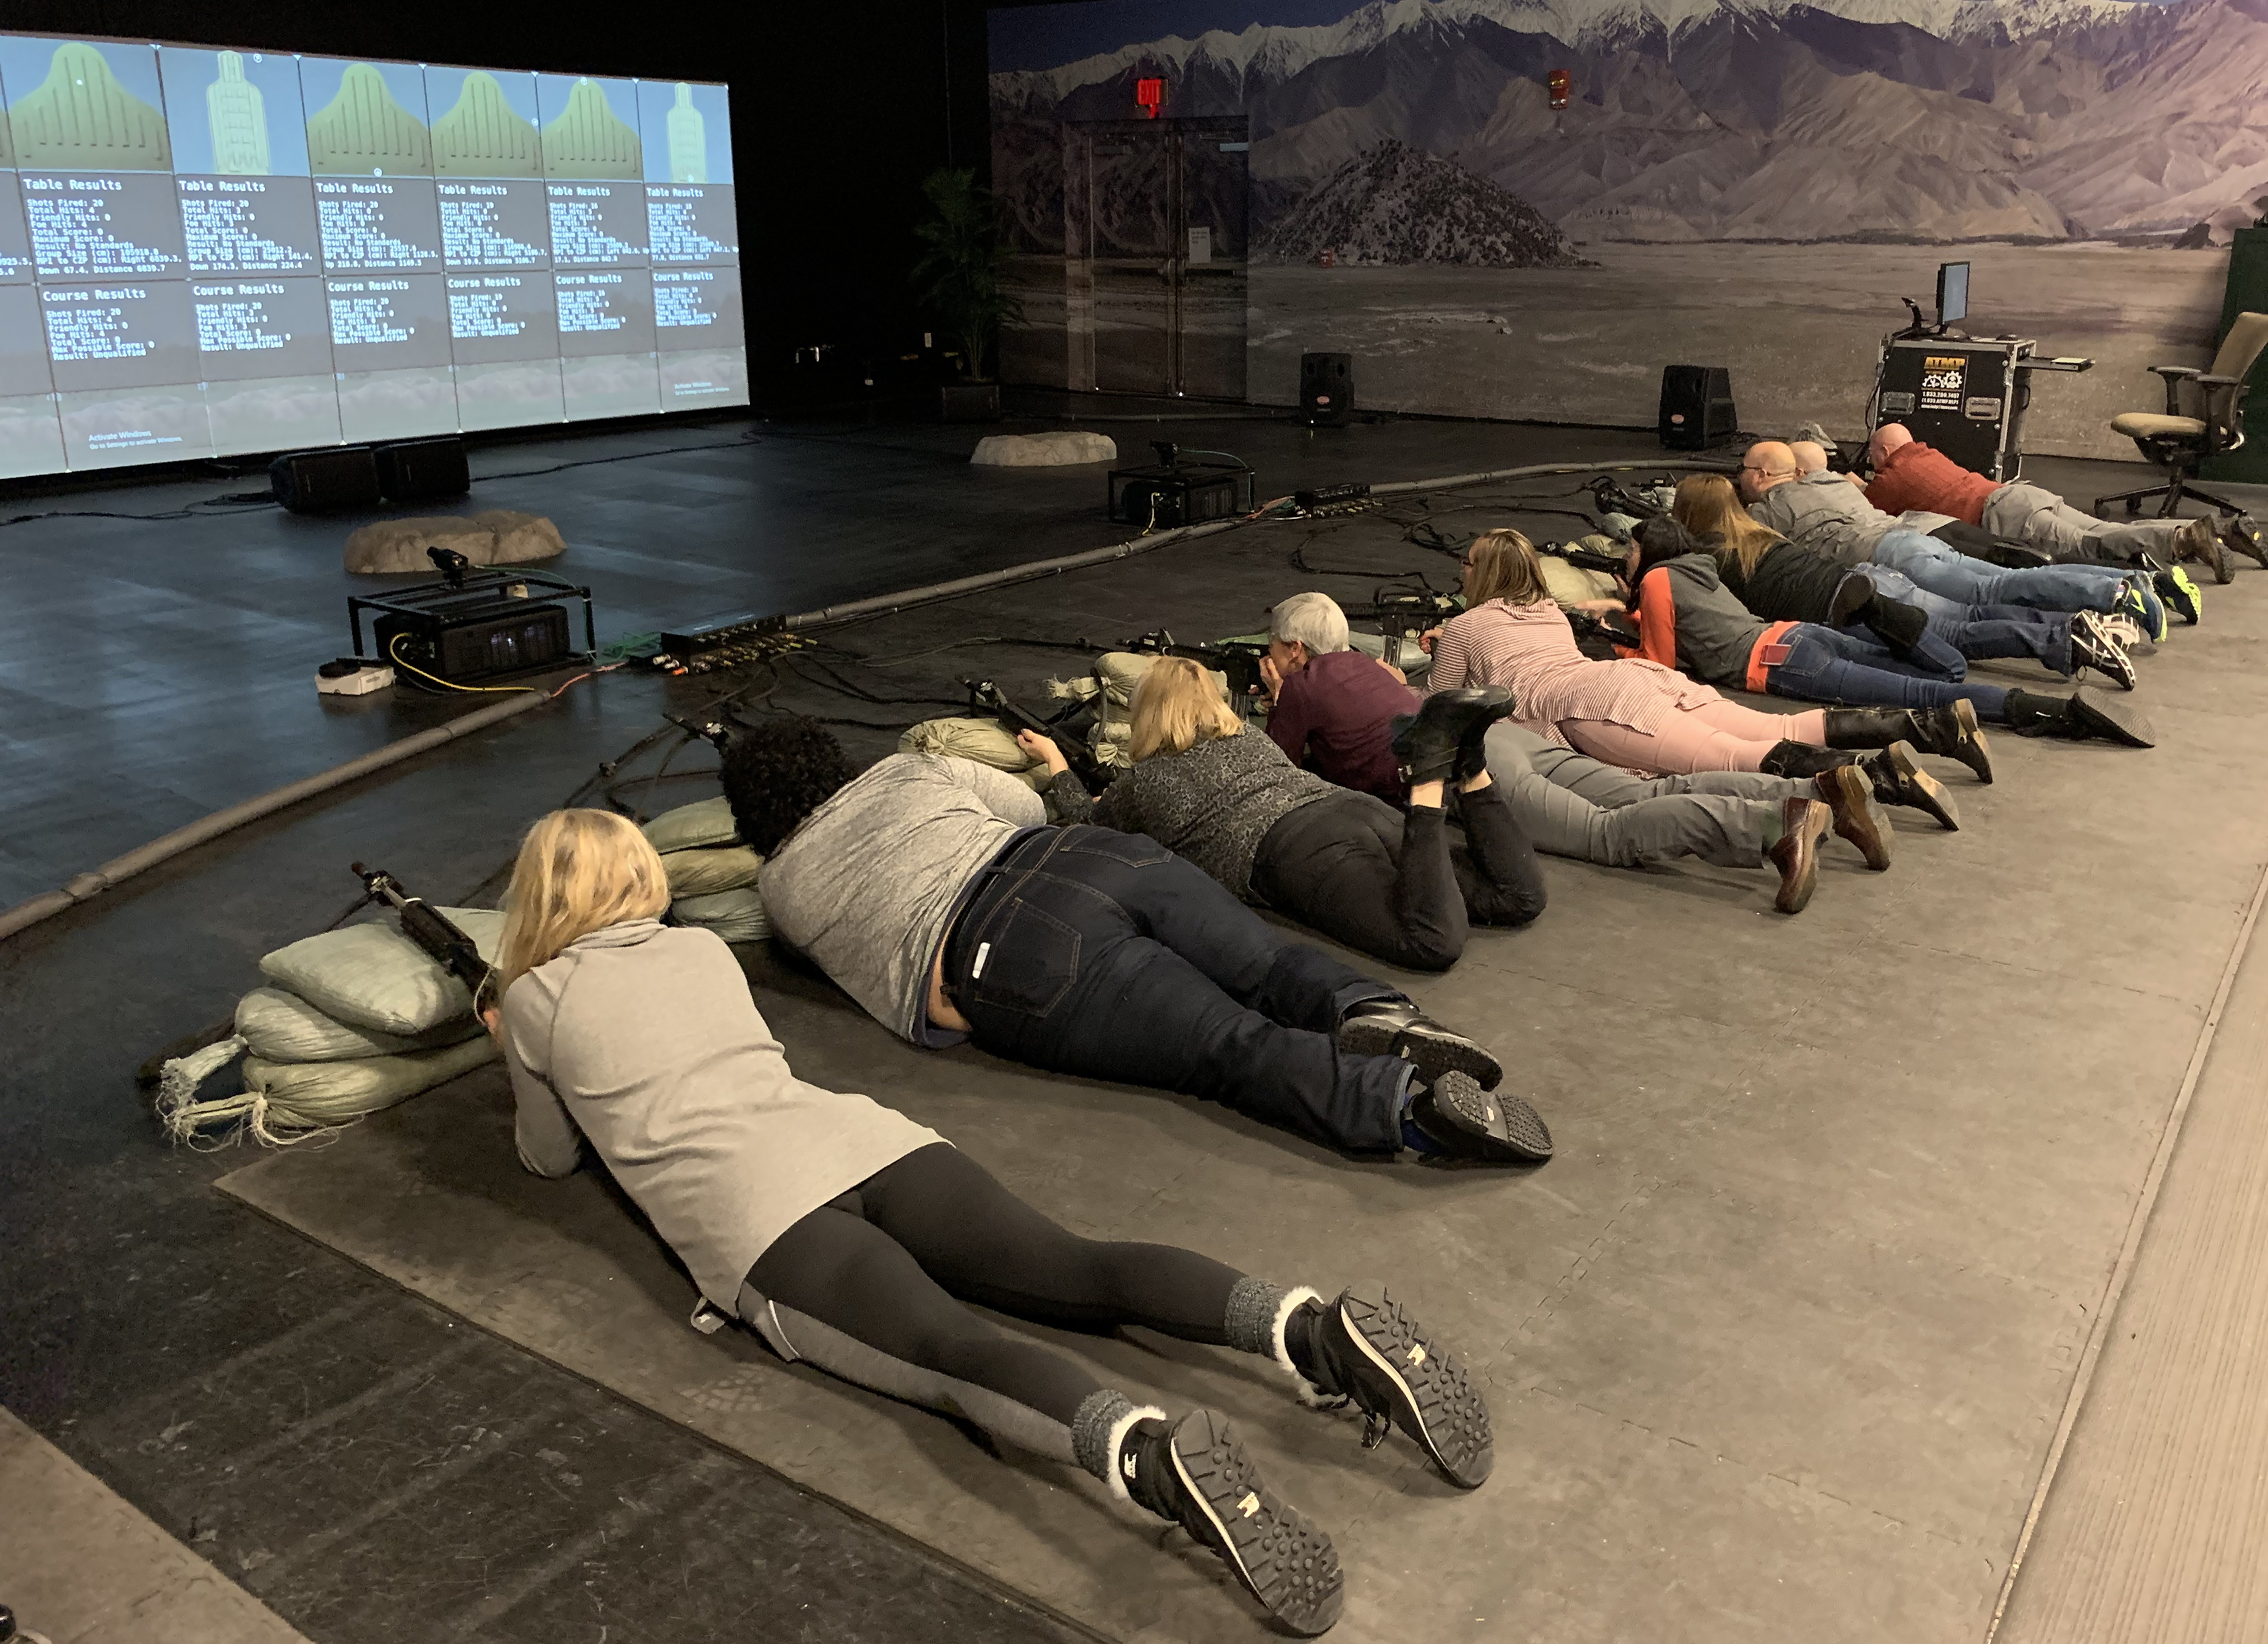 Caption: High school educators take part in a virtual firing range exercise as they tour Fort Carson, Col. Army leaders hope these tours will result in educators steering more students toward military service., Credit: Dan Boyce / American Homefront